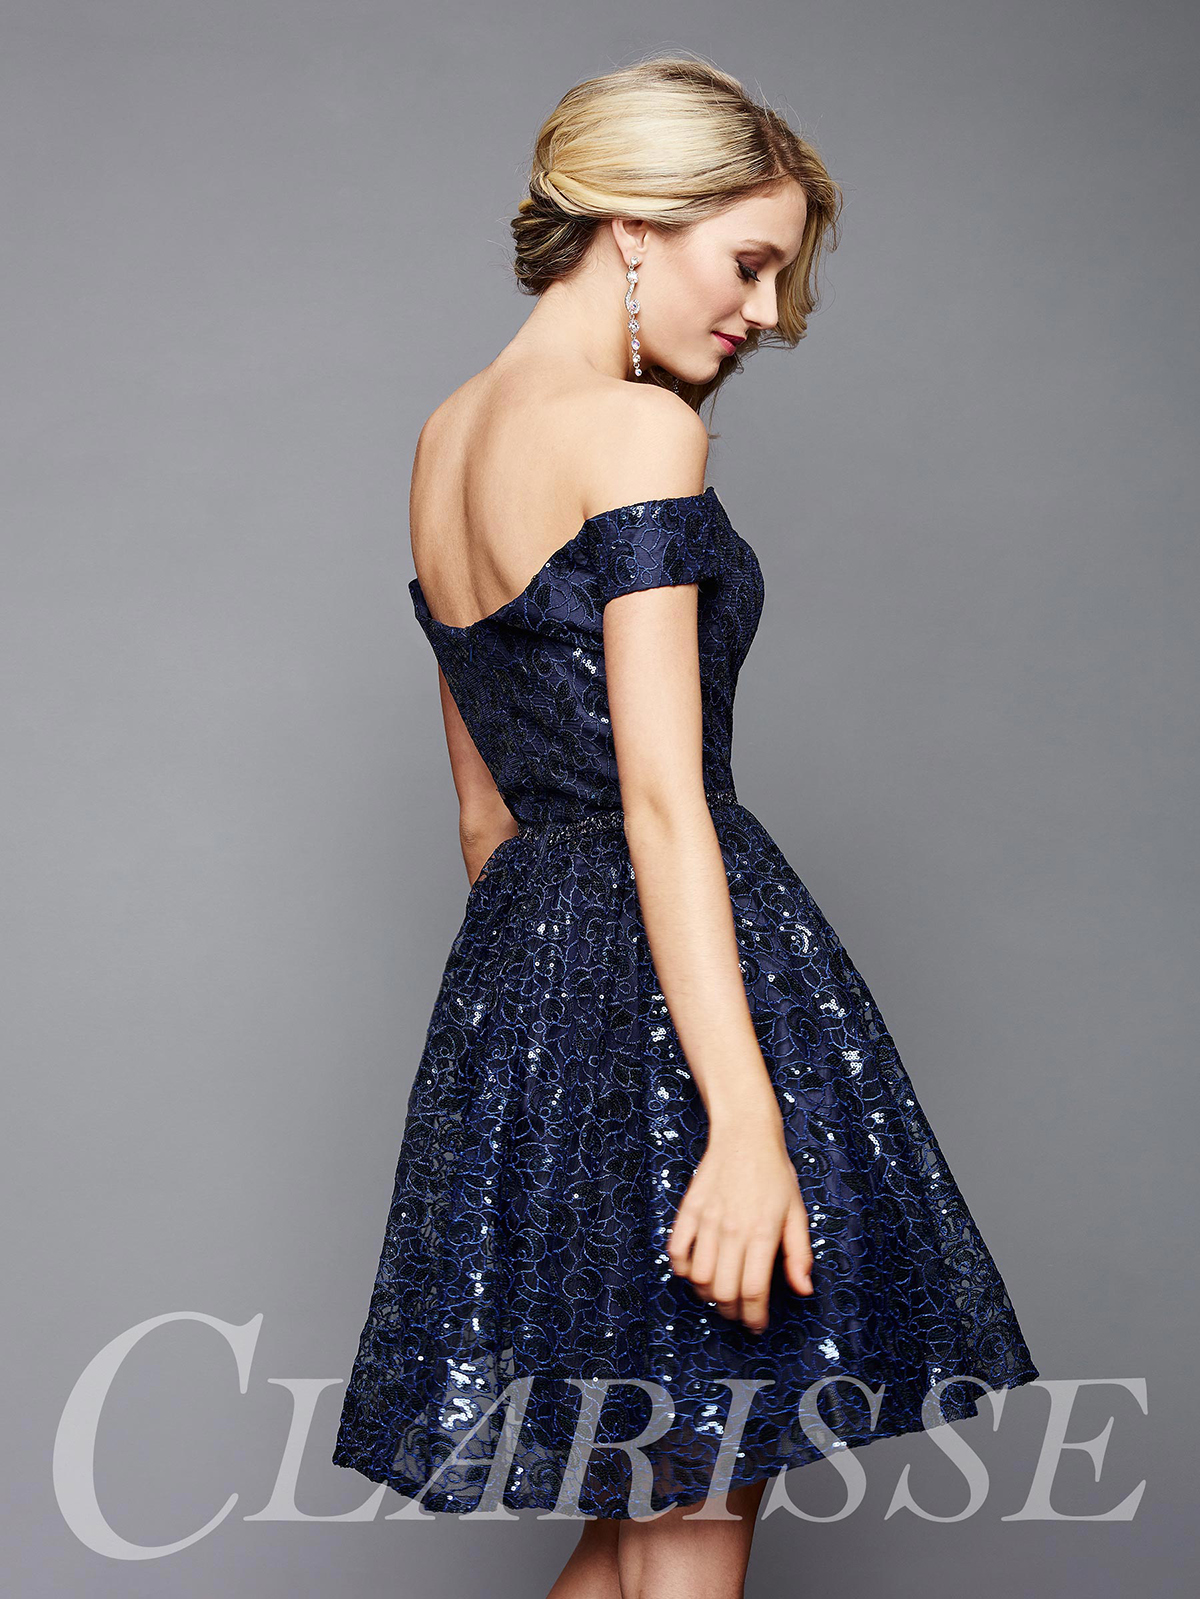 Clarisse Homecoming Dress 3345 | Promgirl.net